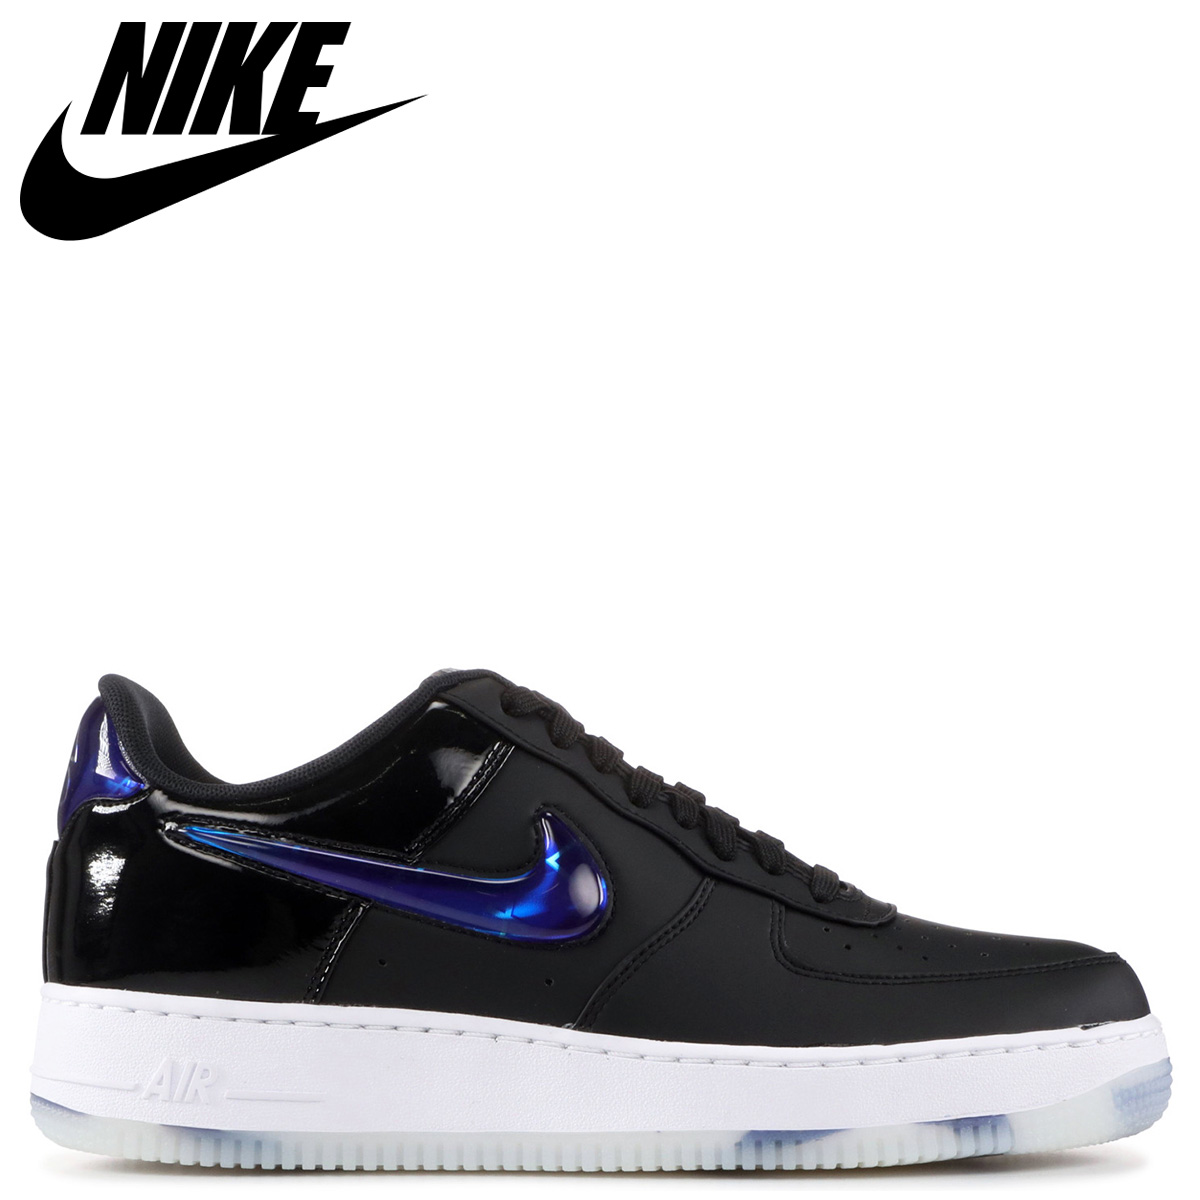 newest 2e101 b49b1 NIKE Nike air force 1 sneakers men Play Station AIR FORCE 1 PLAYSTATION QS  2018 collaboration black black BQ3634-001